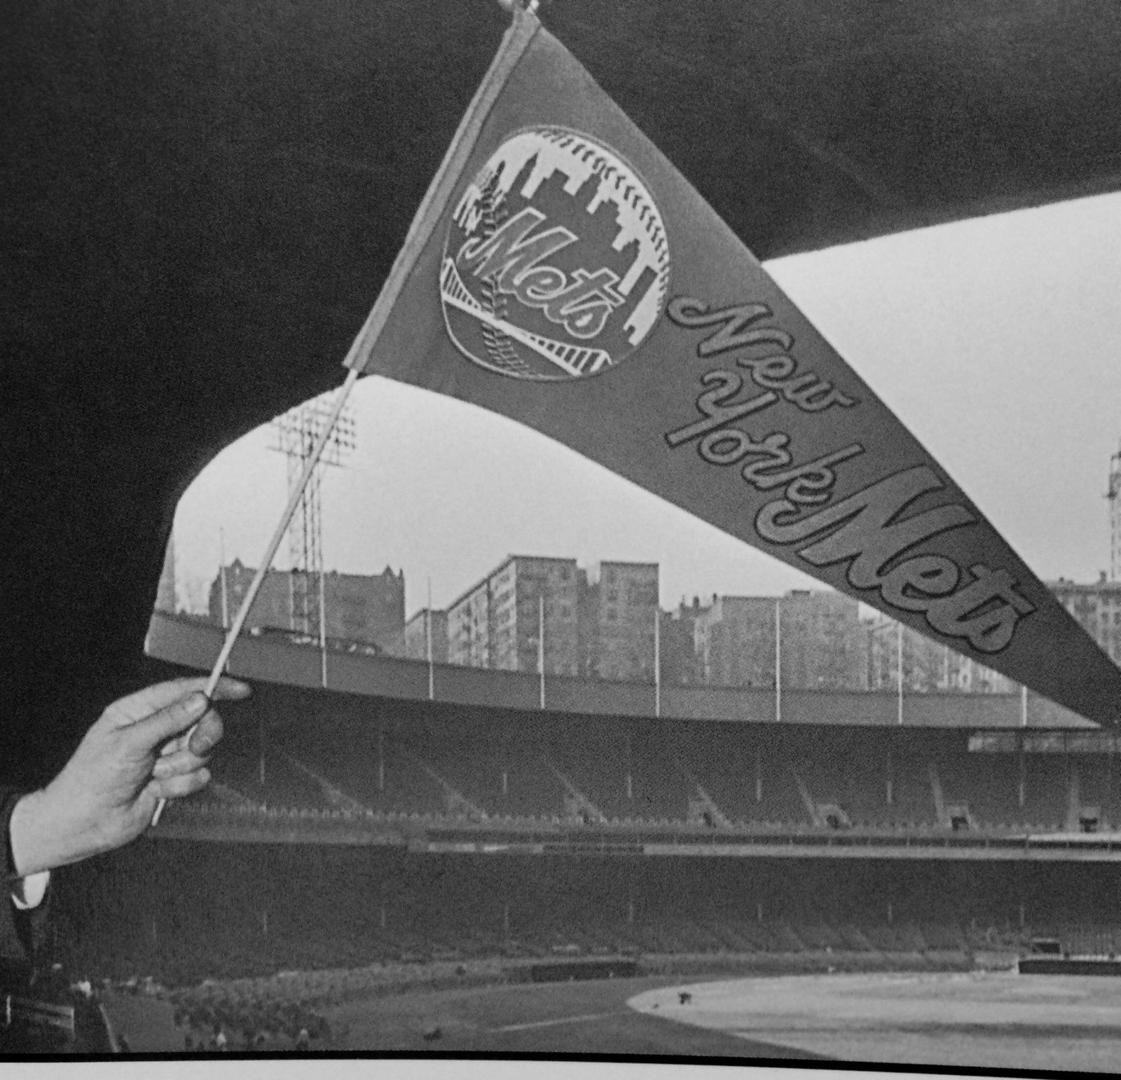 ny-mets-polo-grounds-1st-year-1962_1_7e5a88aa078e2ff15cdd268857025ce5.jpg